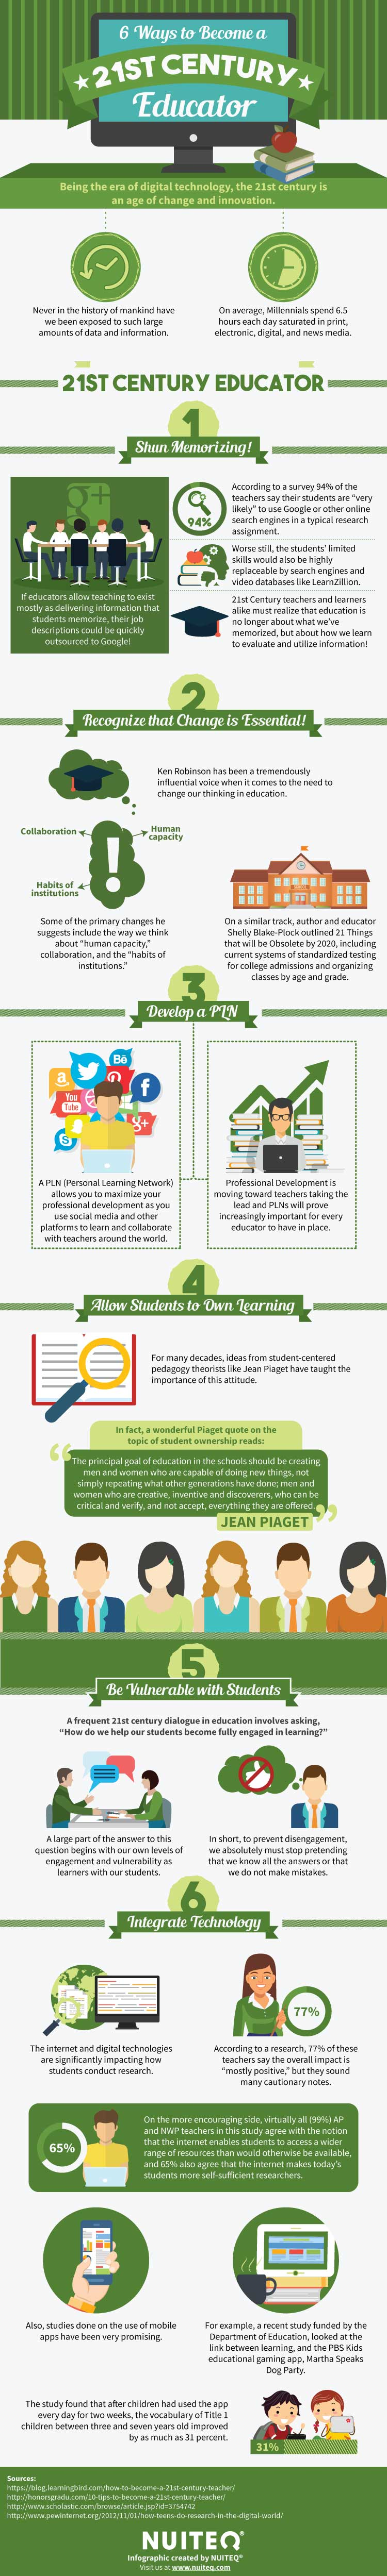 6 Ways to Become a 21st Century Teacher